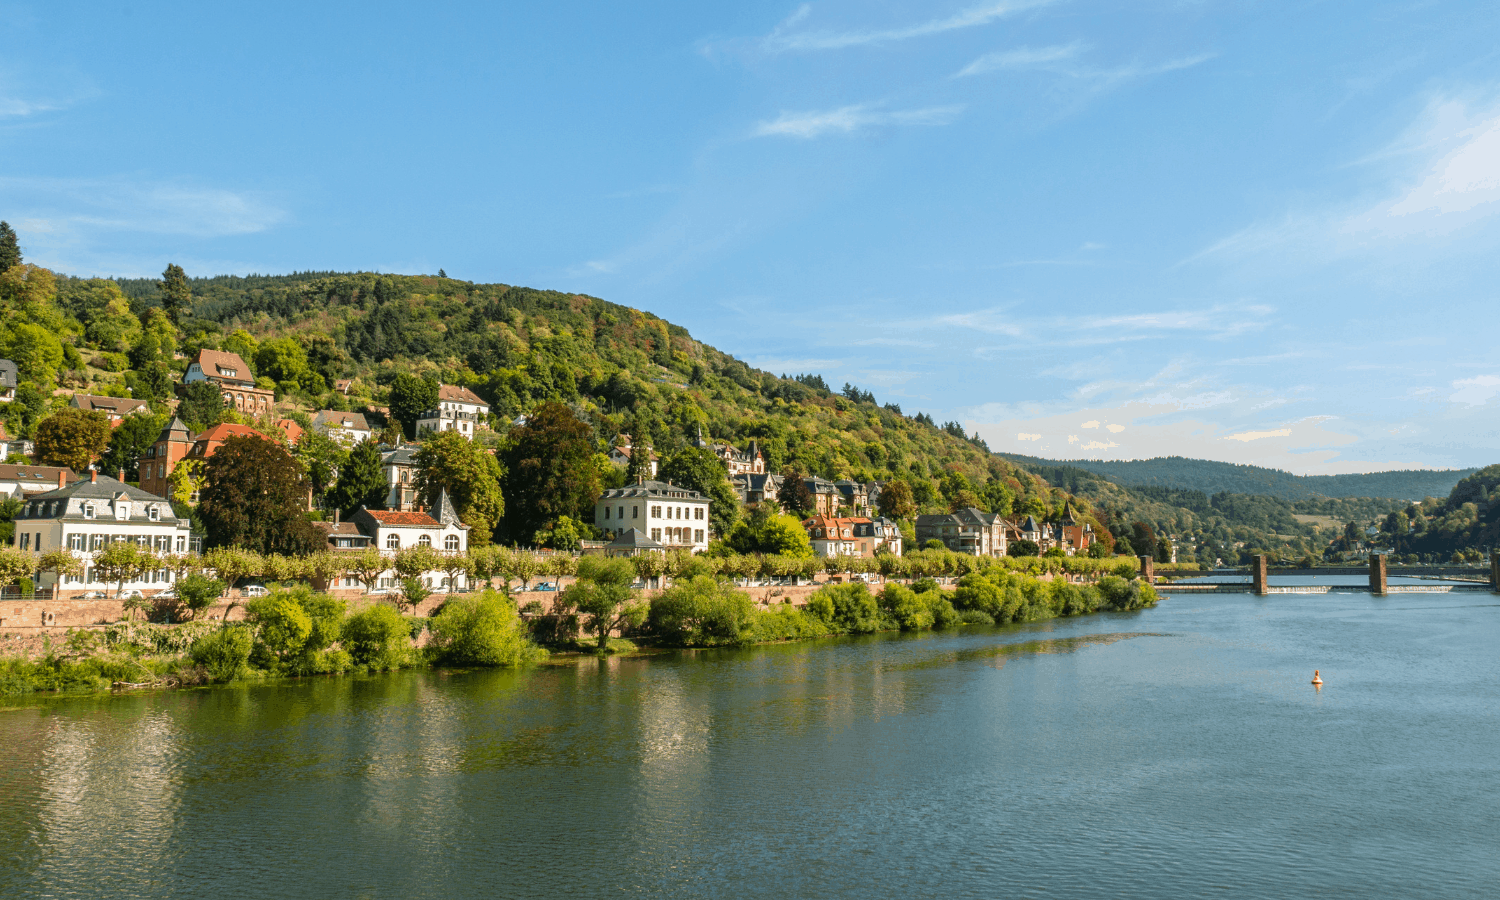 Beautiful view of Heidelberg Town